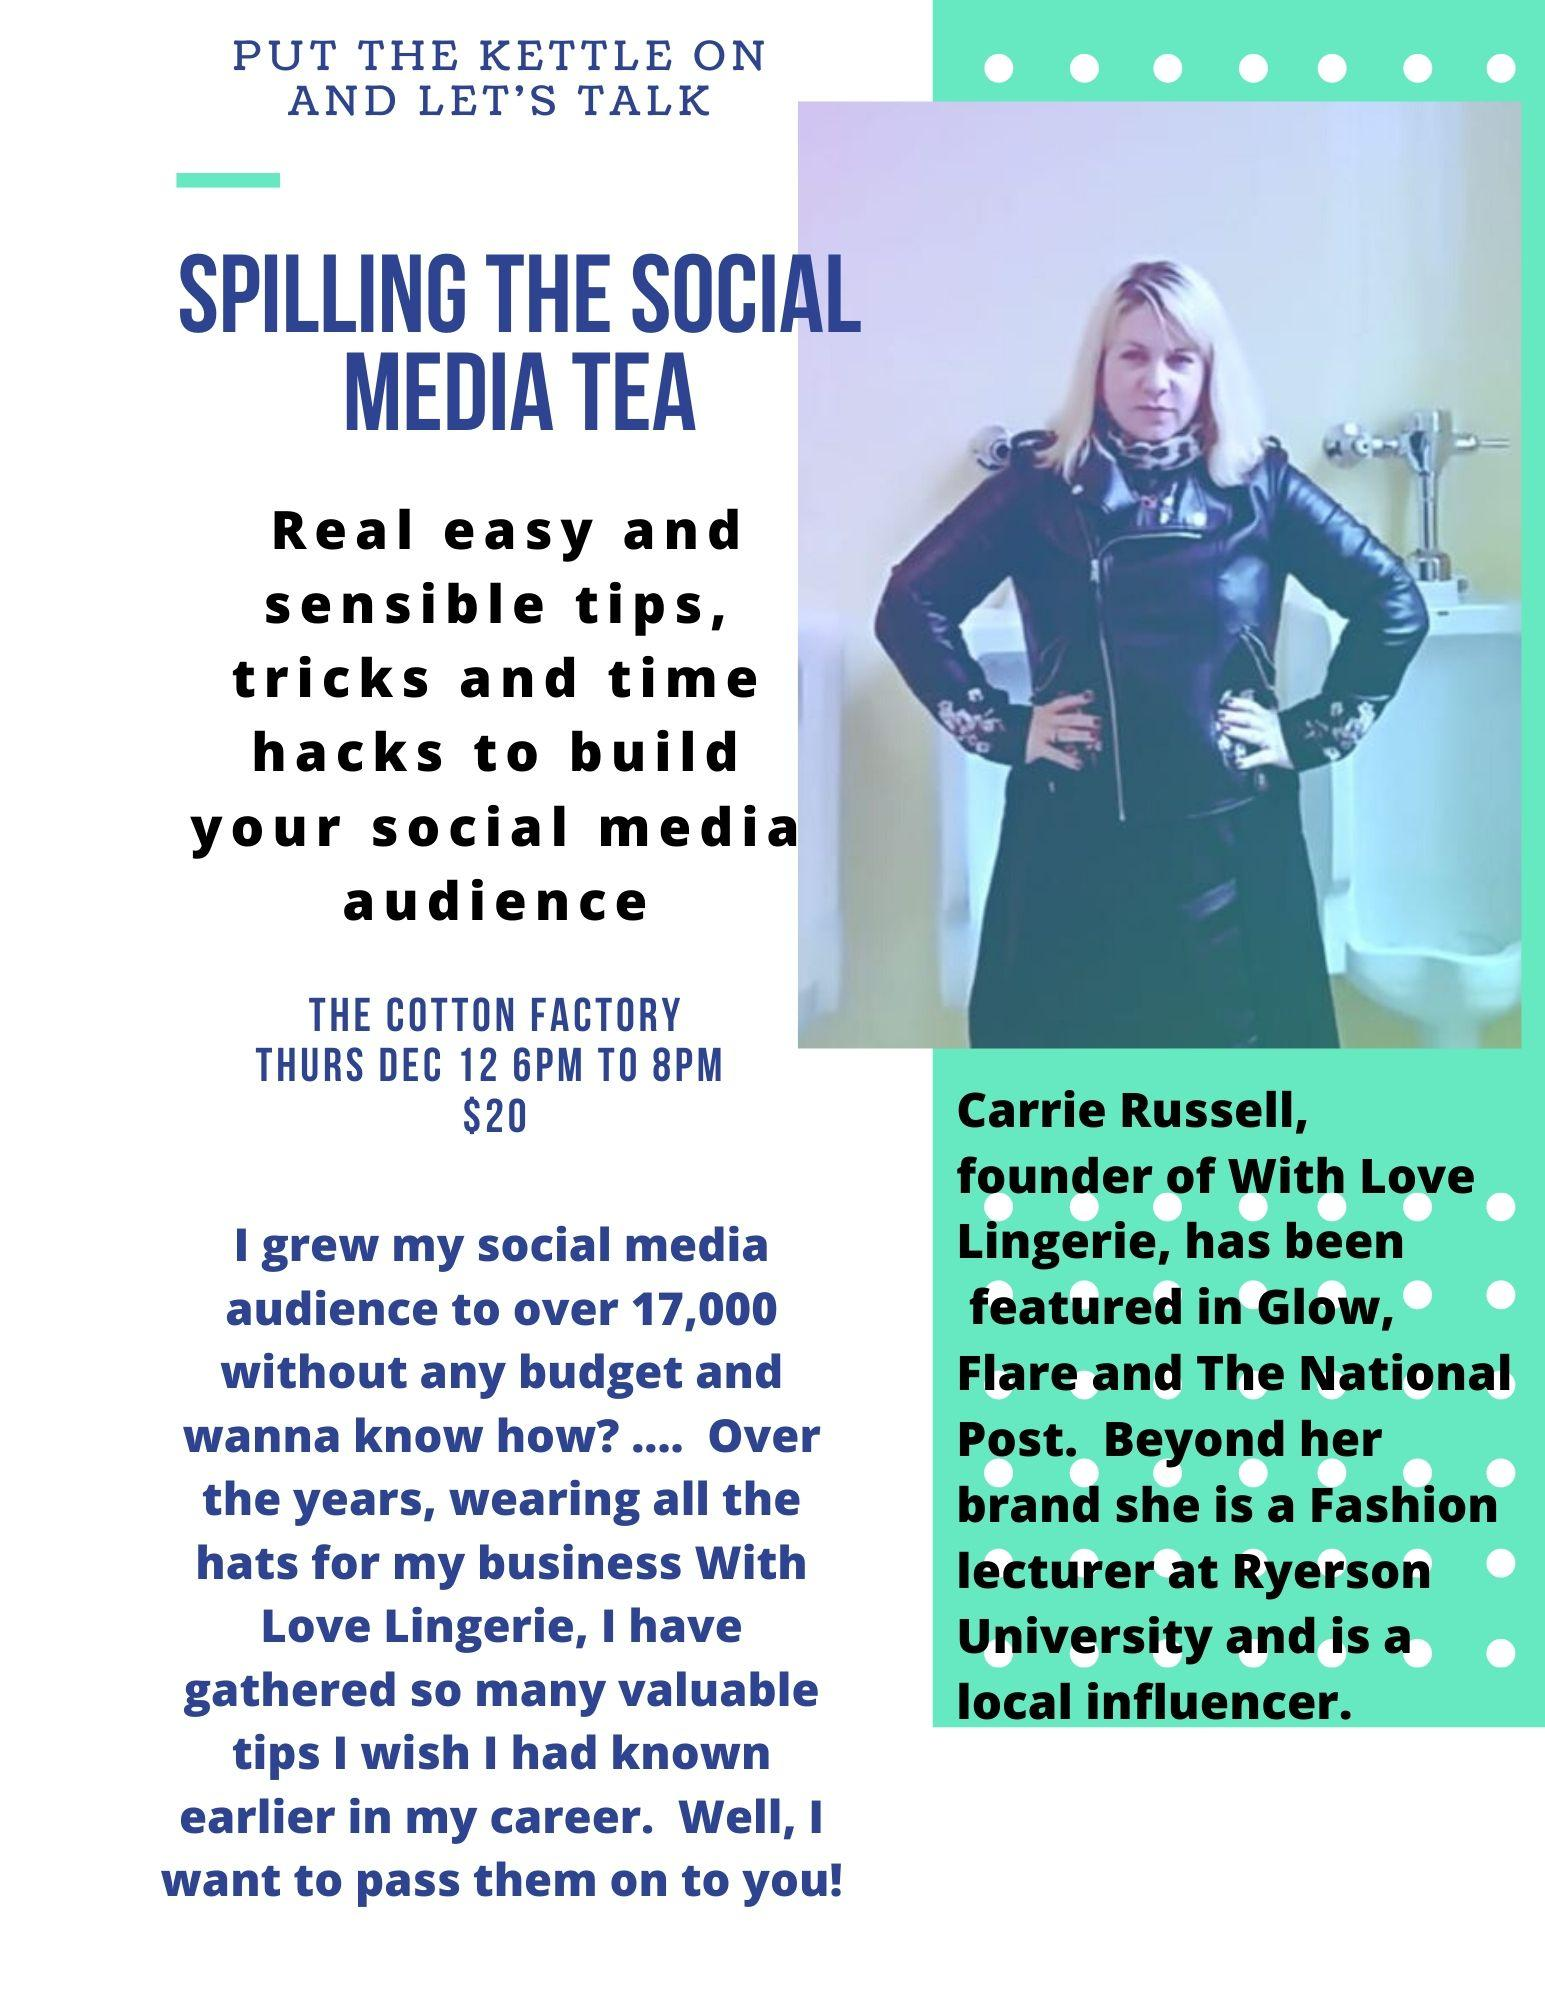 Spill the Social Media Tea With Carrie of With Love Lingerie